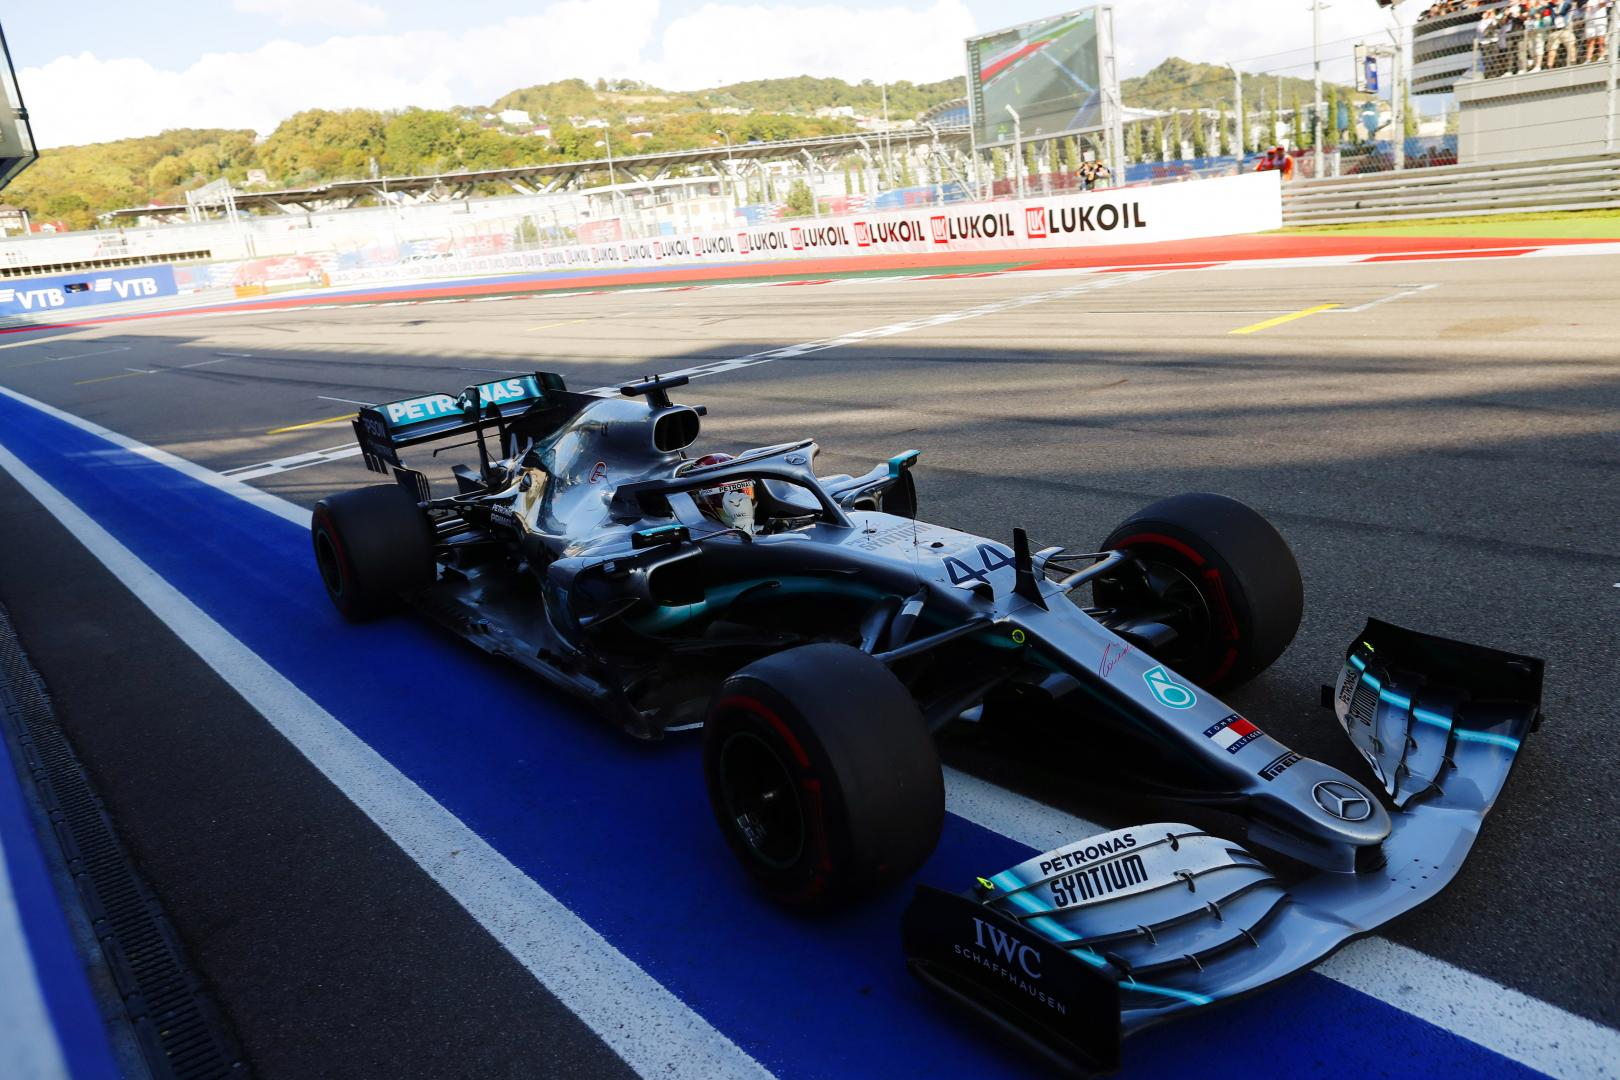 Lewis Hamilton over finish dichtbij GP van Rusland 2019